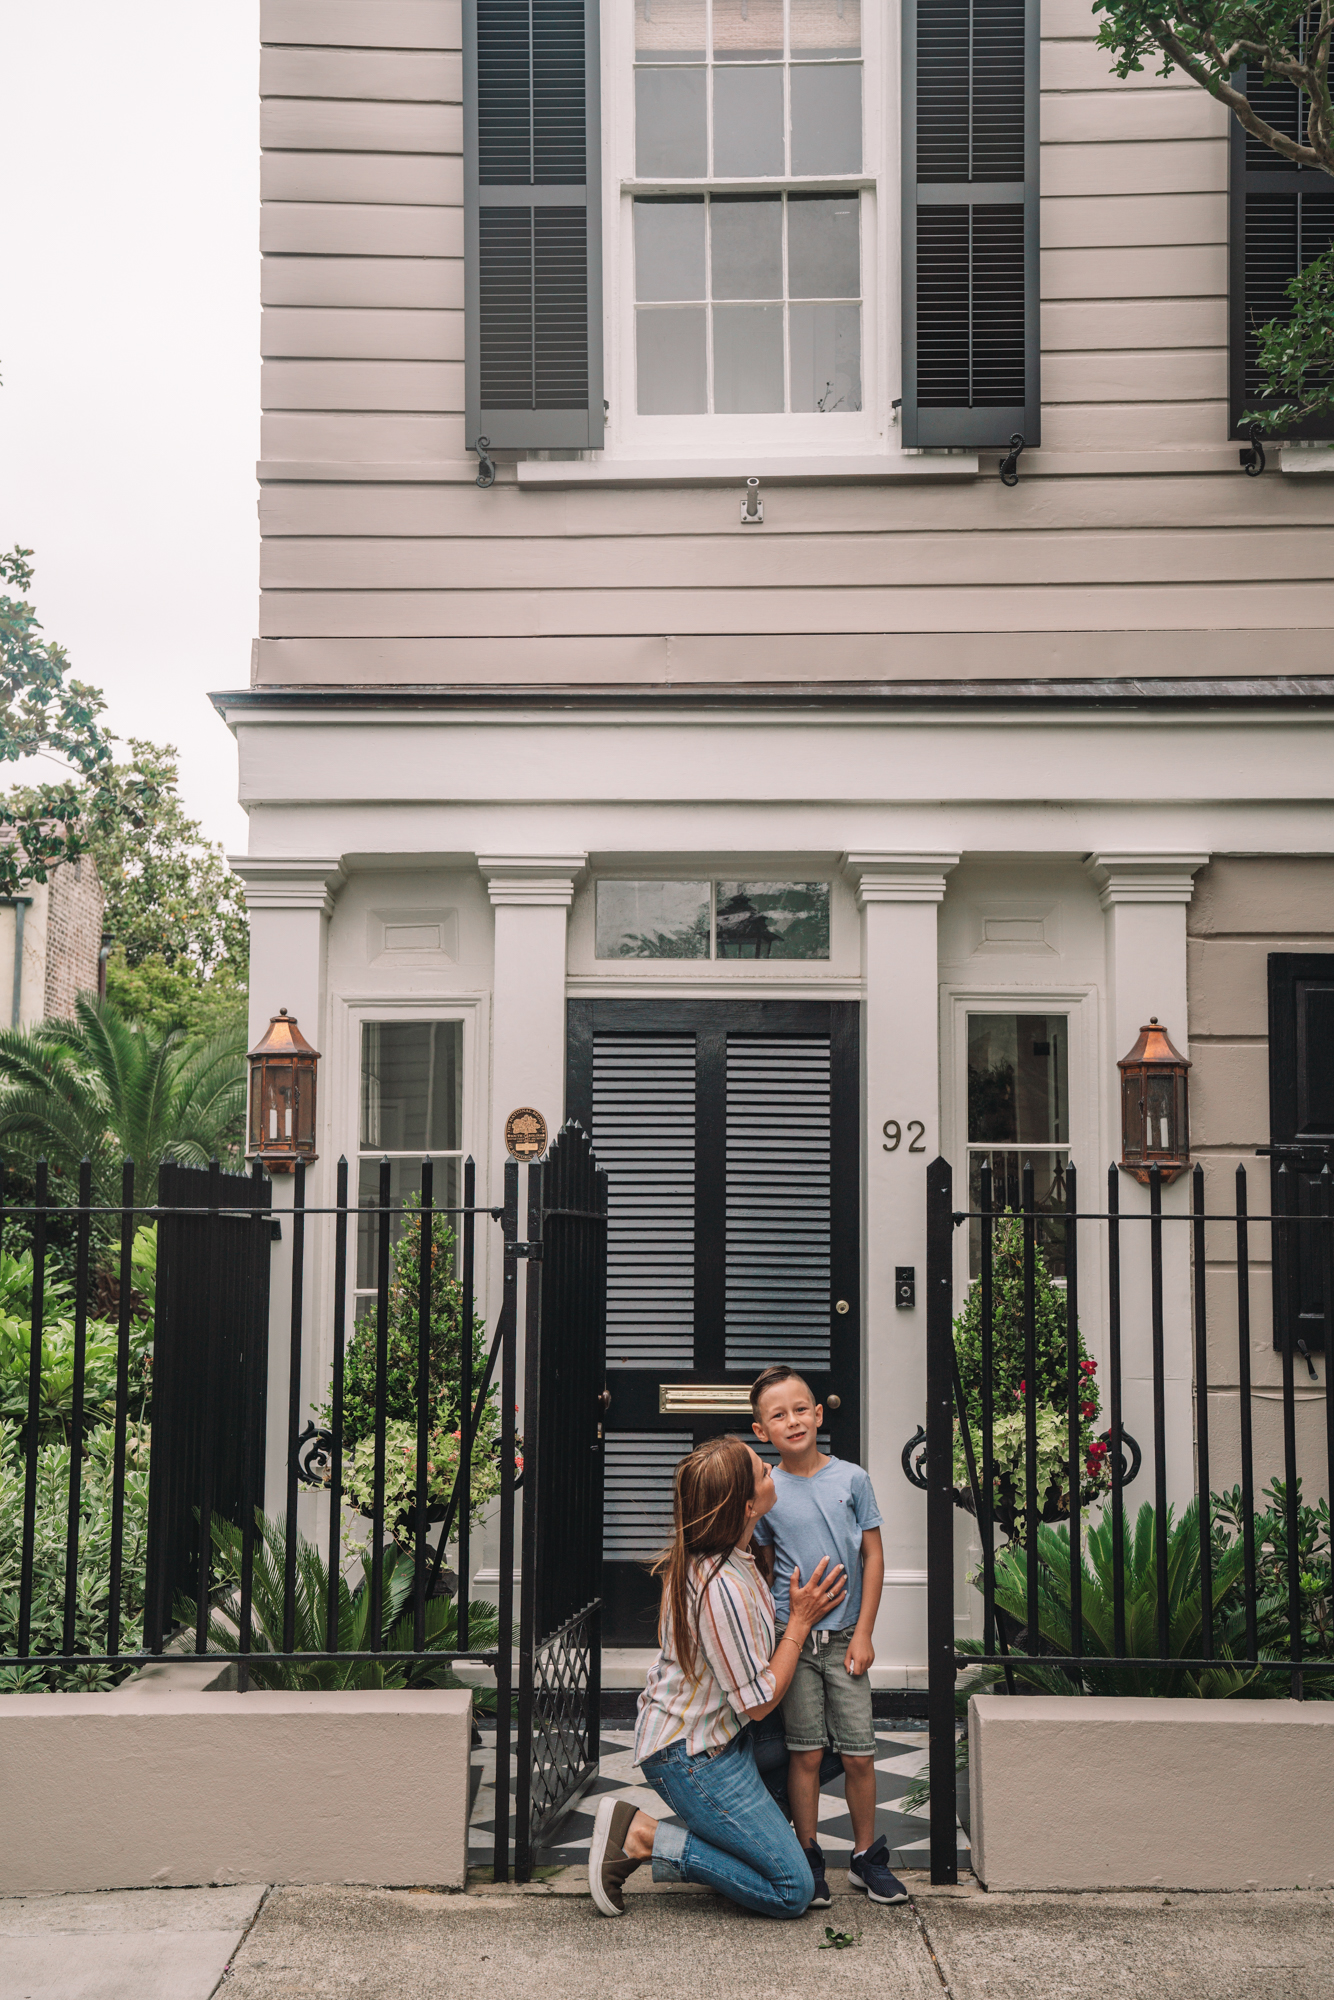 charleston sc visitors guide - a little boy and his grandma smile in front of a grand southern home.